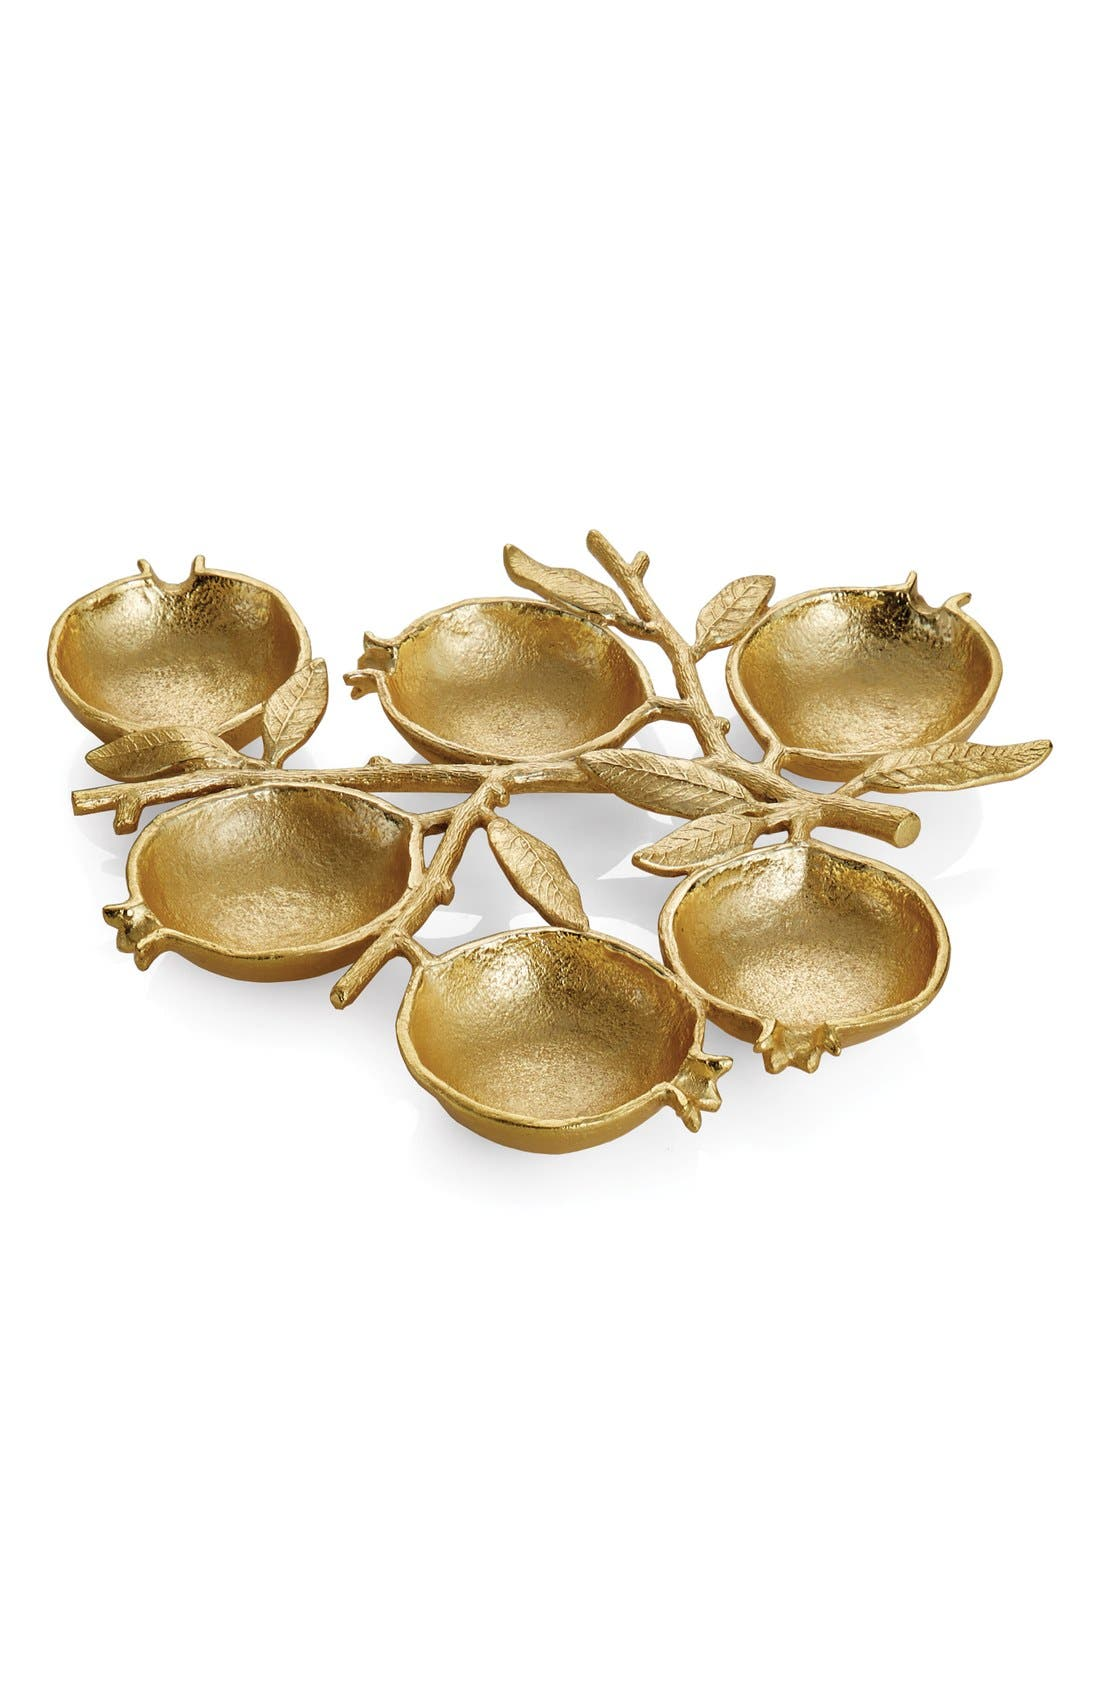 Main Image - Michael Aram 'Pomegranate' 6-Compartment Plate